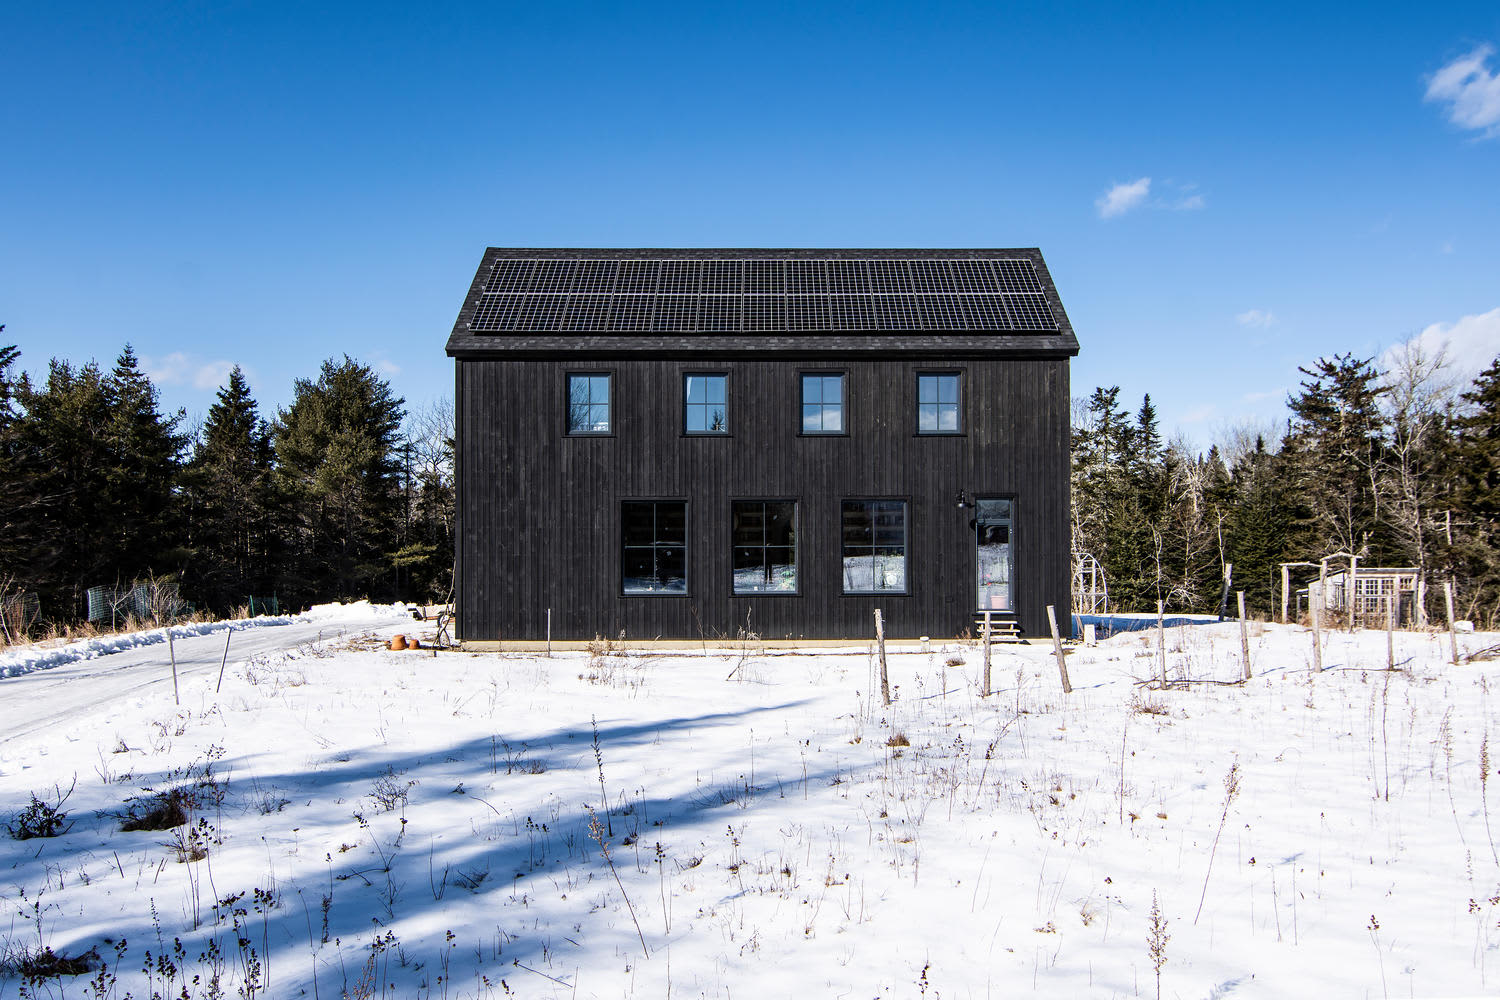 Look Inside: This Contemporary Barn in Maine Borders Blueberry Fields